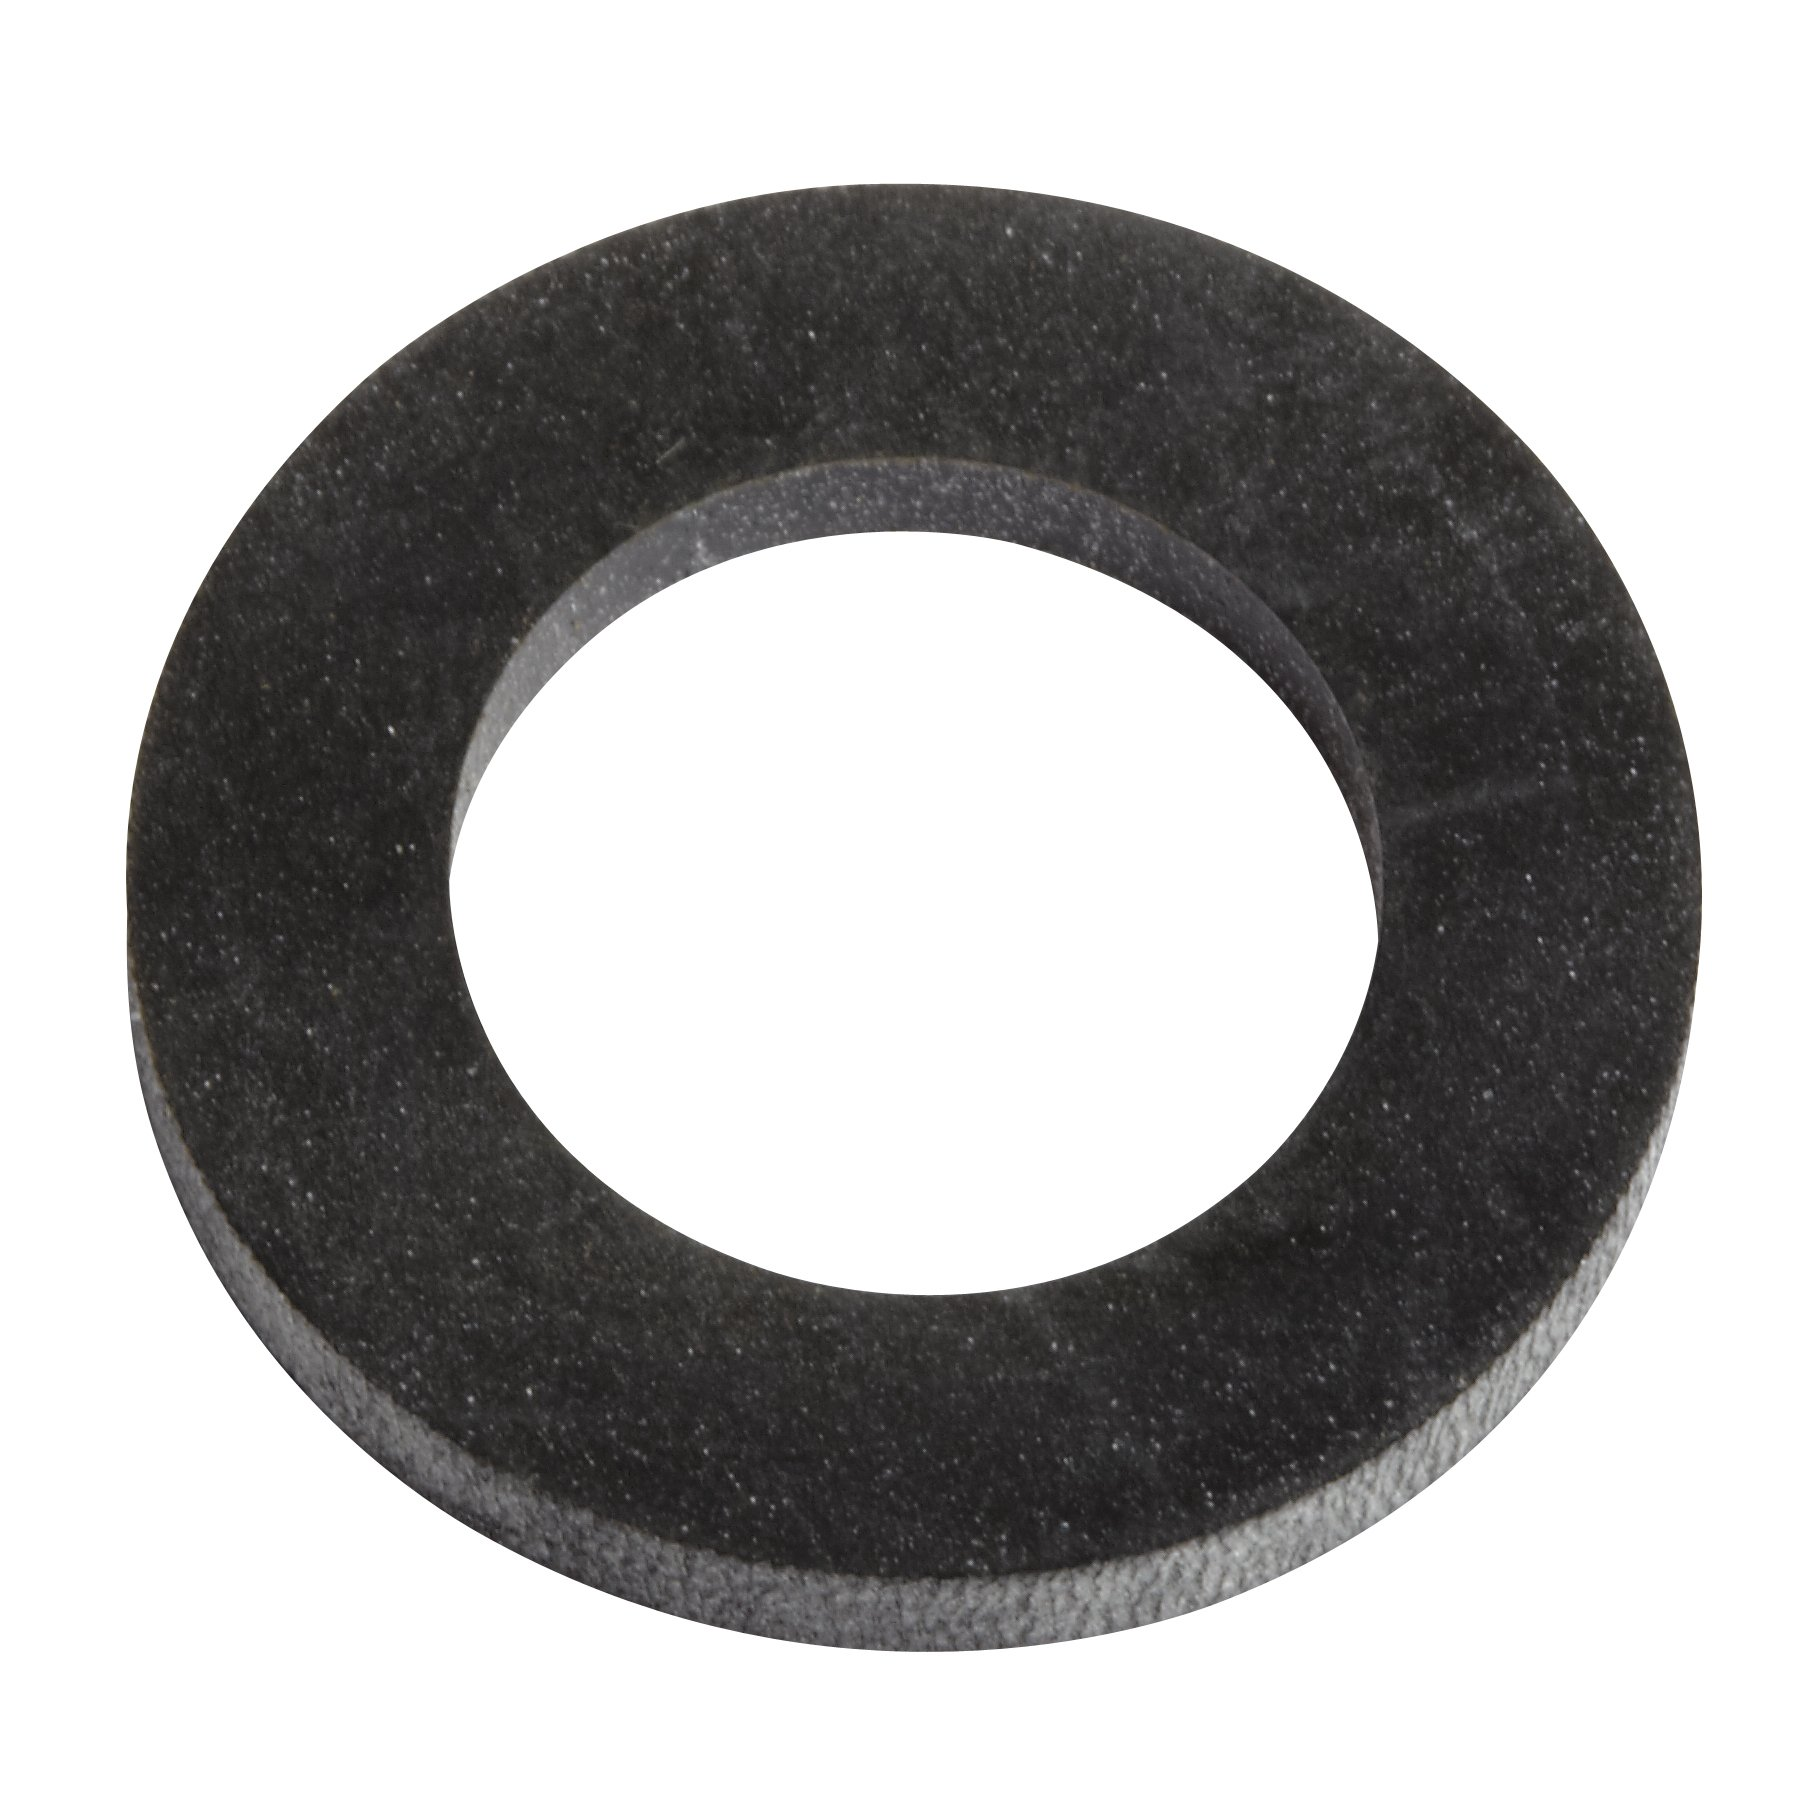 American Standard A911737-0070A SEAL WASHER